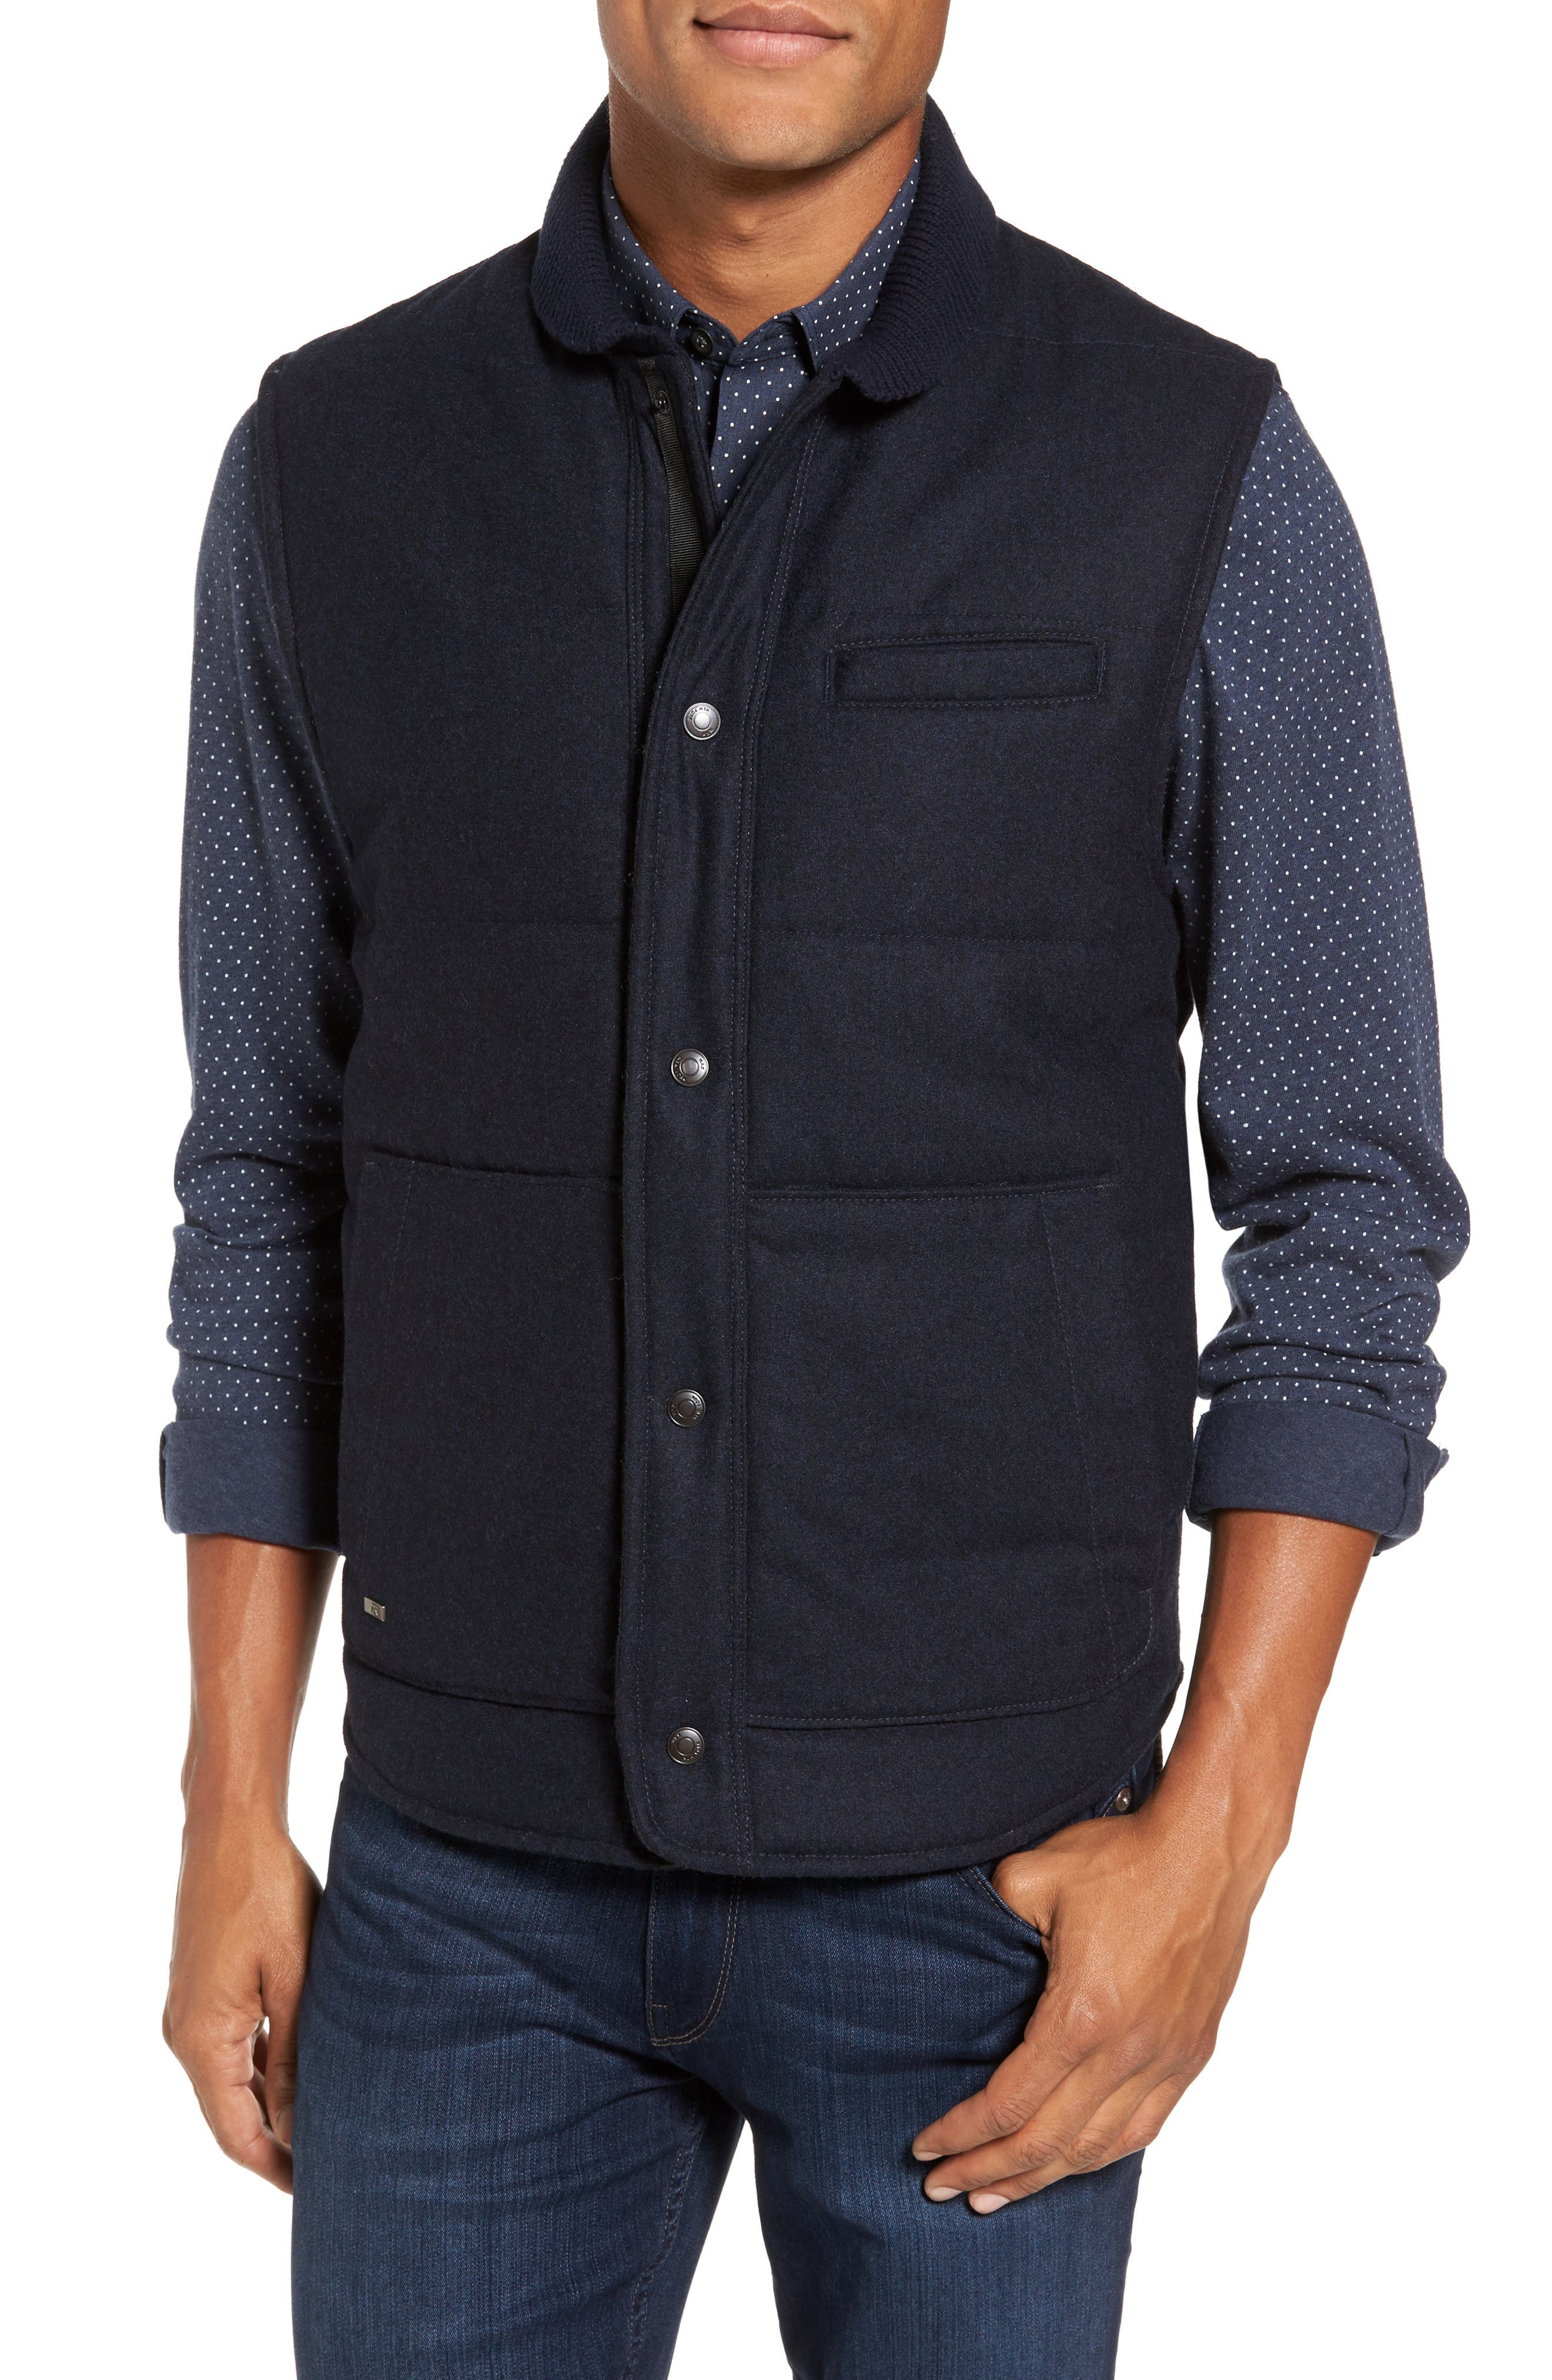 Quilted Work Vest,                             Main thumbnail 1, color,                             410